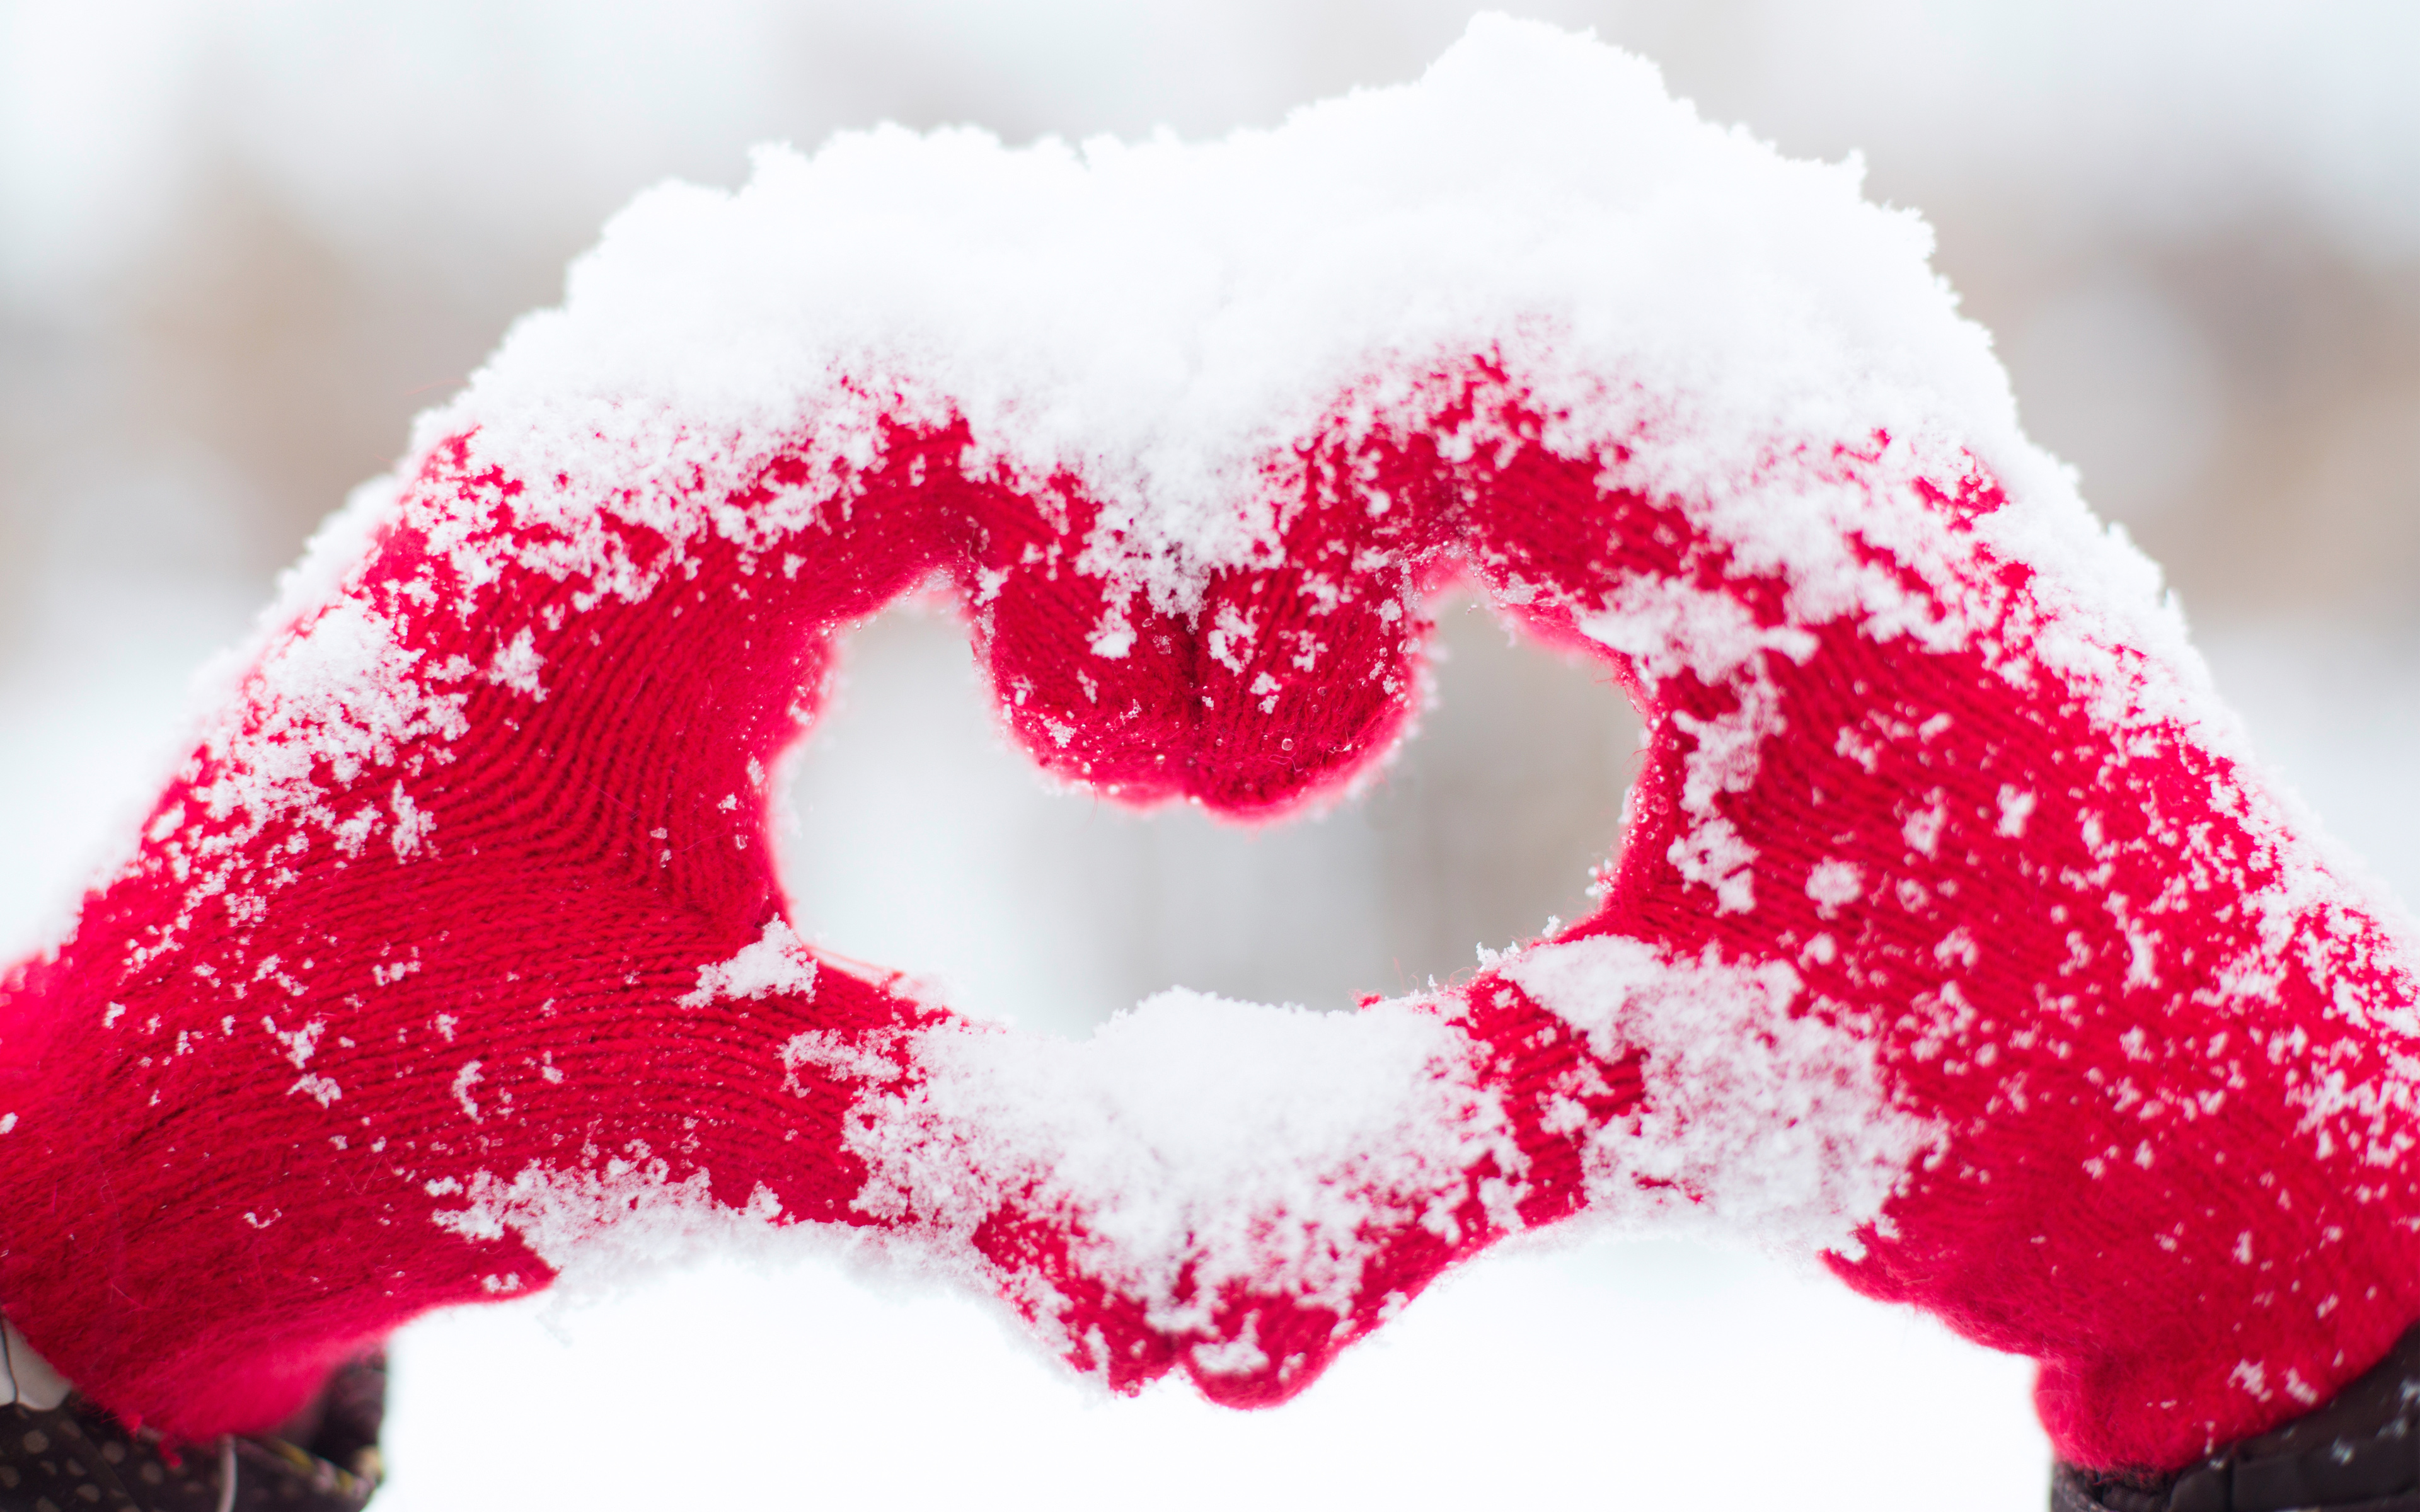 Love heart Snow Hands 5K447378859 - Love heart Snow Hands 5K - Snow, Love, Hearts, Heart, Hands